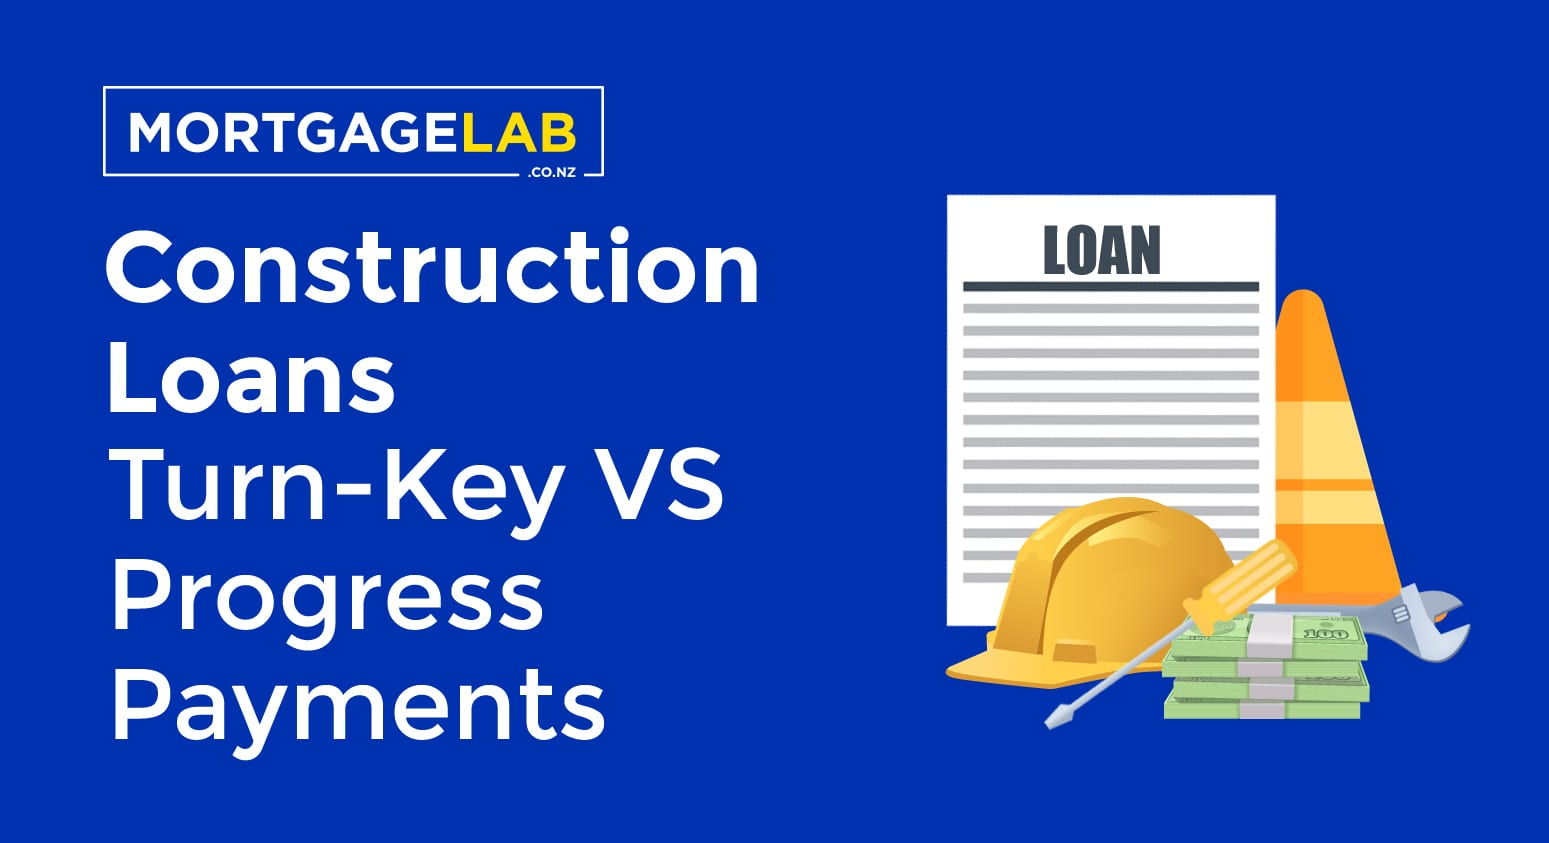 Turn Key, Progress Payments, Contract, Construction, Building, New Home